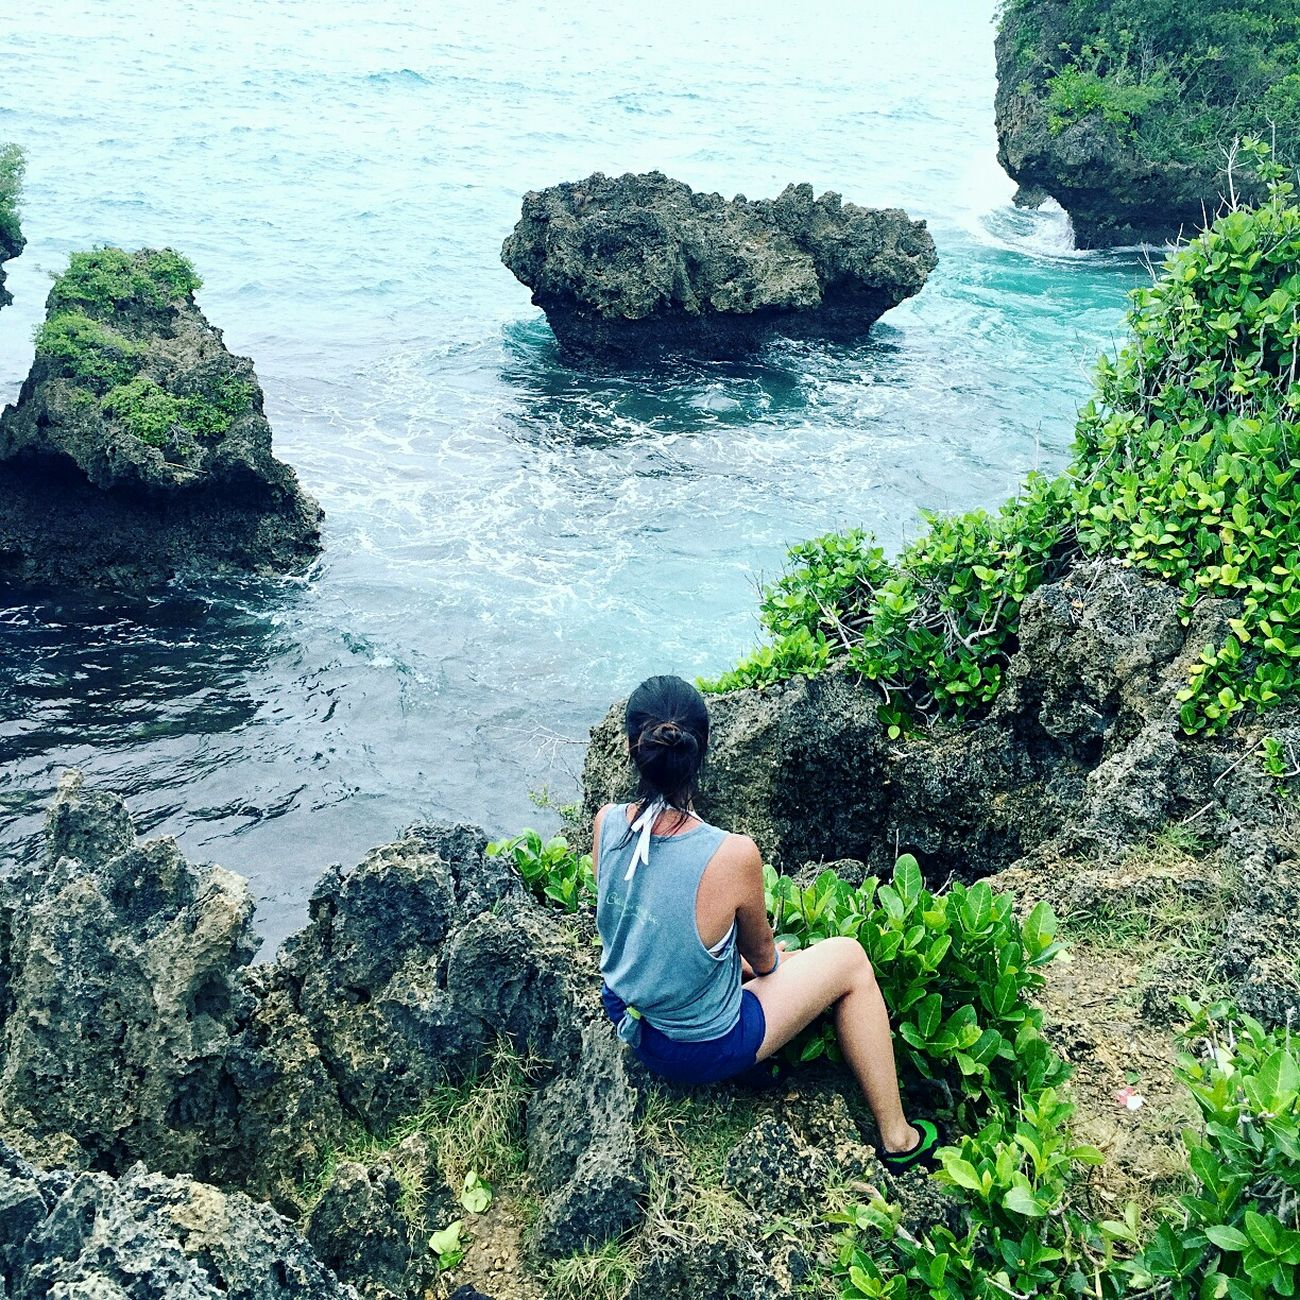 Always on the edge.. Sitting Water One Person Nature Sea Outdoors Beauty In Nature Abrileverywhere Travel Philippines Cliffview Cliffsandsea Landscape EyeEmNewHere Real People Bicol, Philippines Happiness One Young Woman Only Pinas Muna Travel Destinations Summer Nature Eyeem Philippines